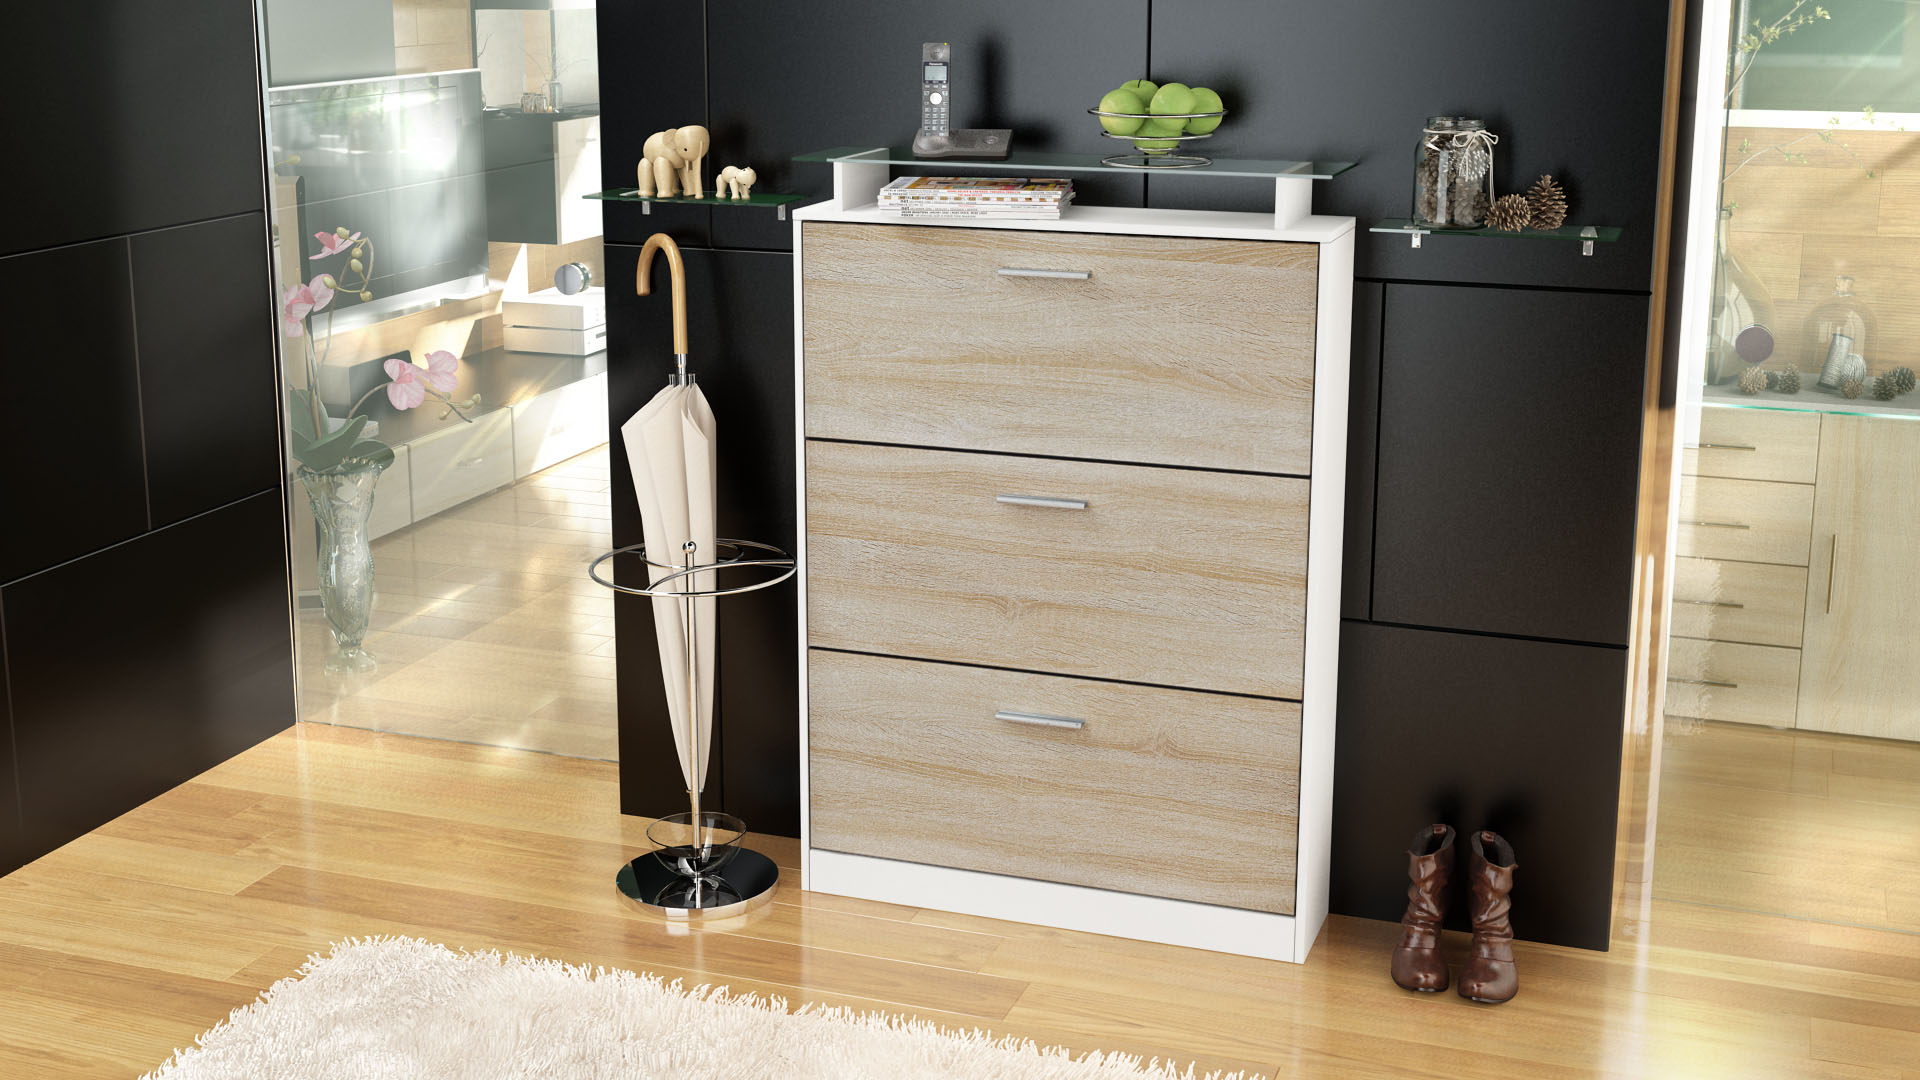 schuhschrank schuhkipper diele flur schrank lavia wei hochglanz naturt ne ebay. Black Bedroom Furniture Sets. Home Design Ideas